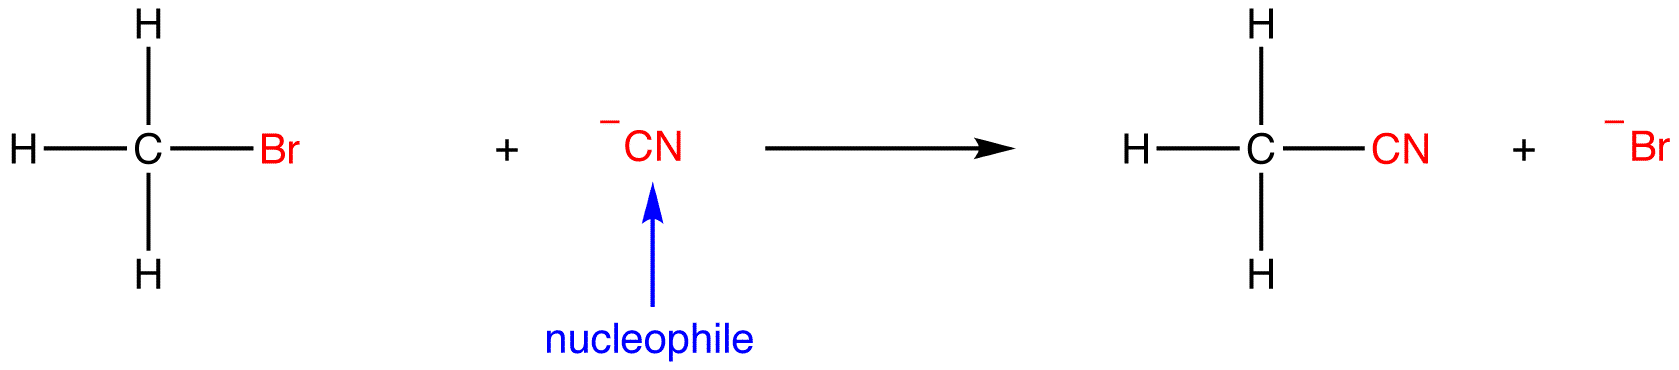 (http://www.ochempal.org/wp-content/images/N/nucleophilicsubstituon2.png)